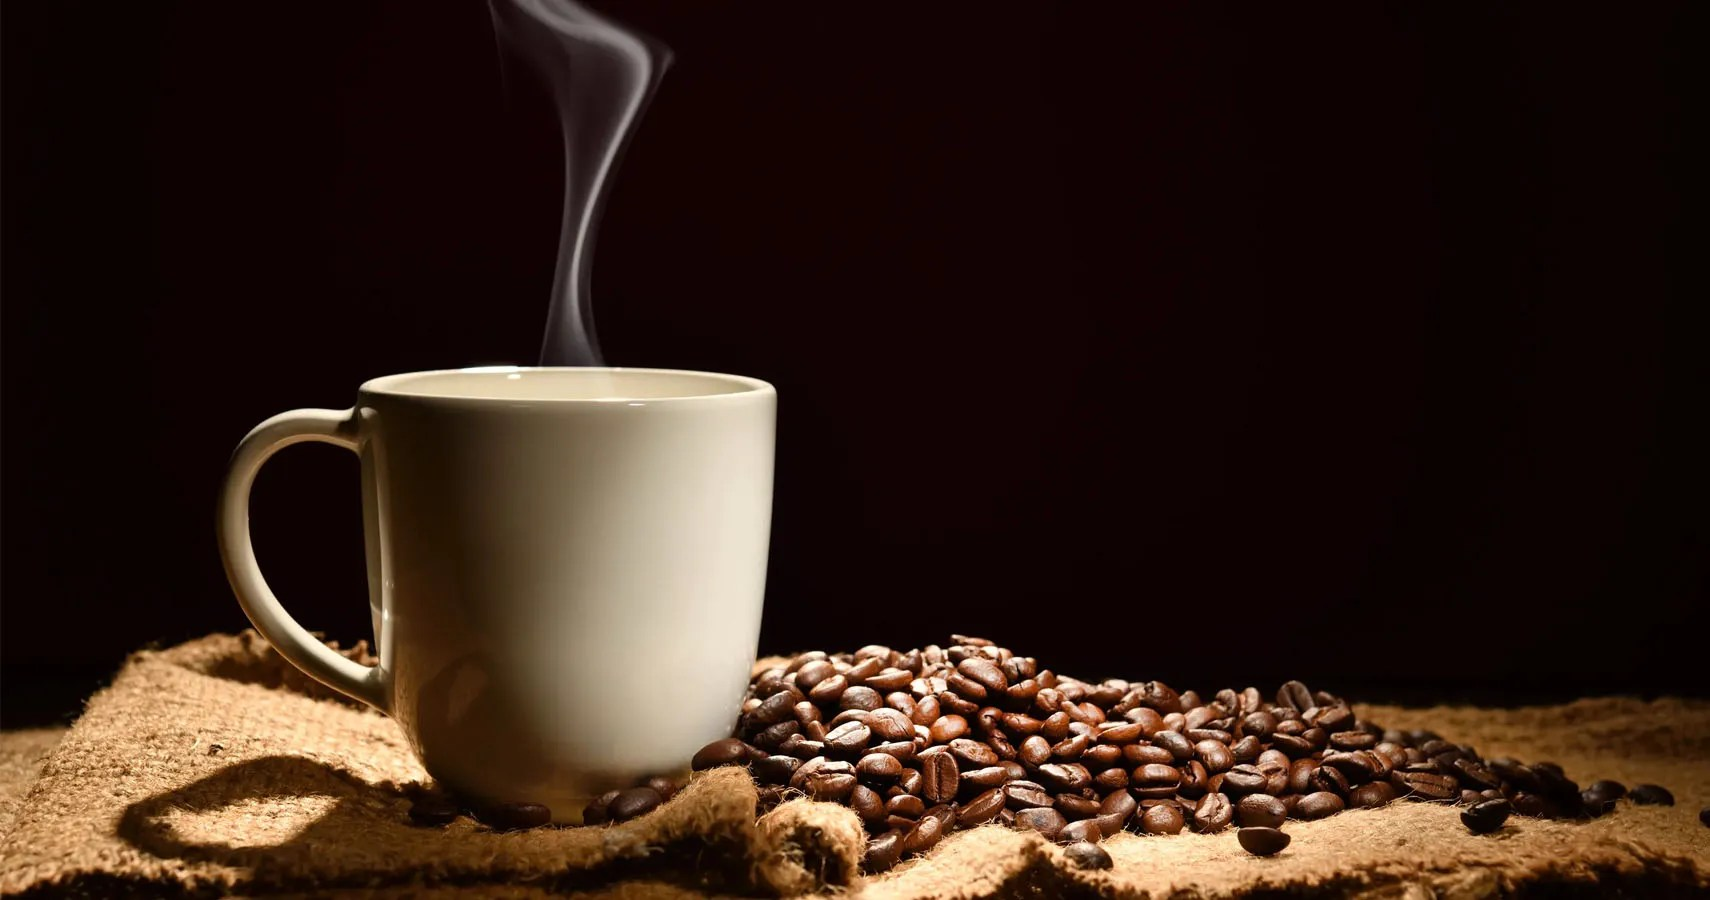 Australian Scientists Testing Climate Resistant Coffee Beans To Save